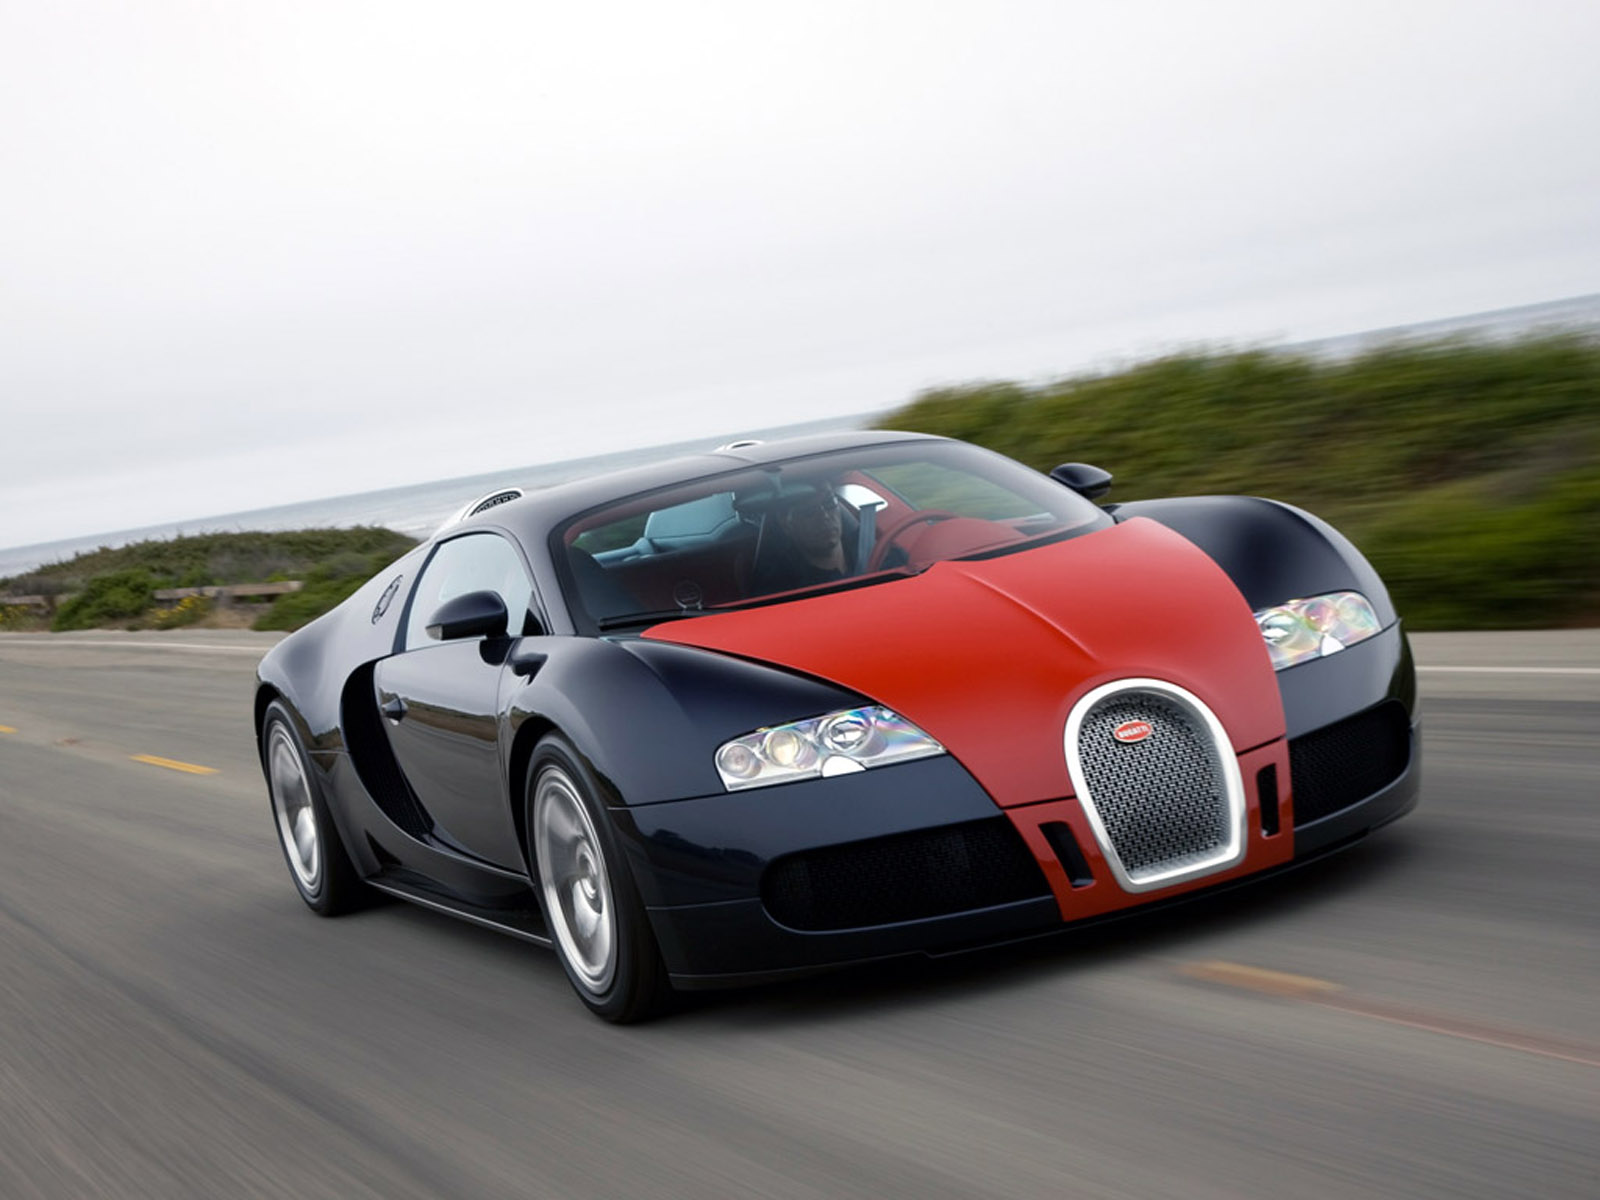 Bugatti Veyron on Show at Top Gear Live | AA Cars